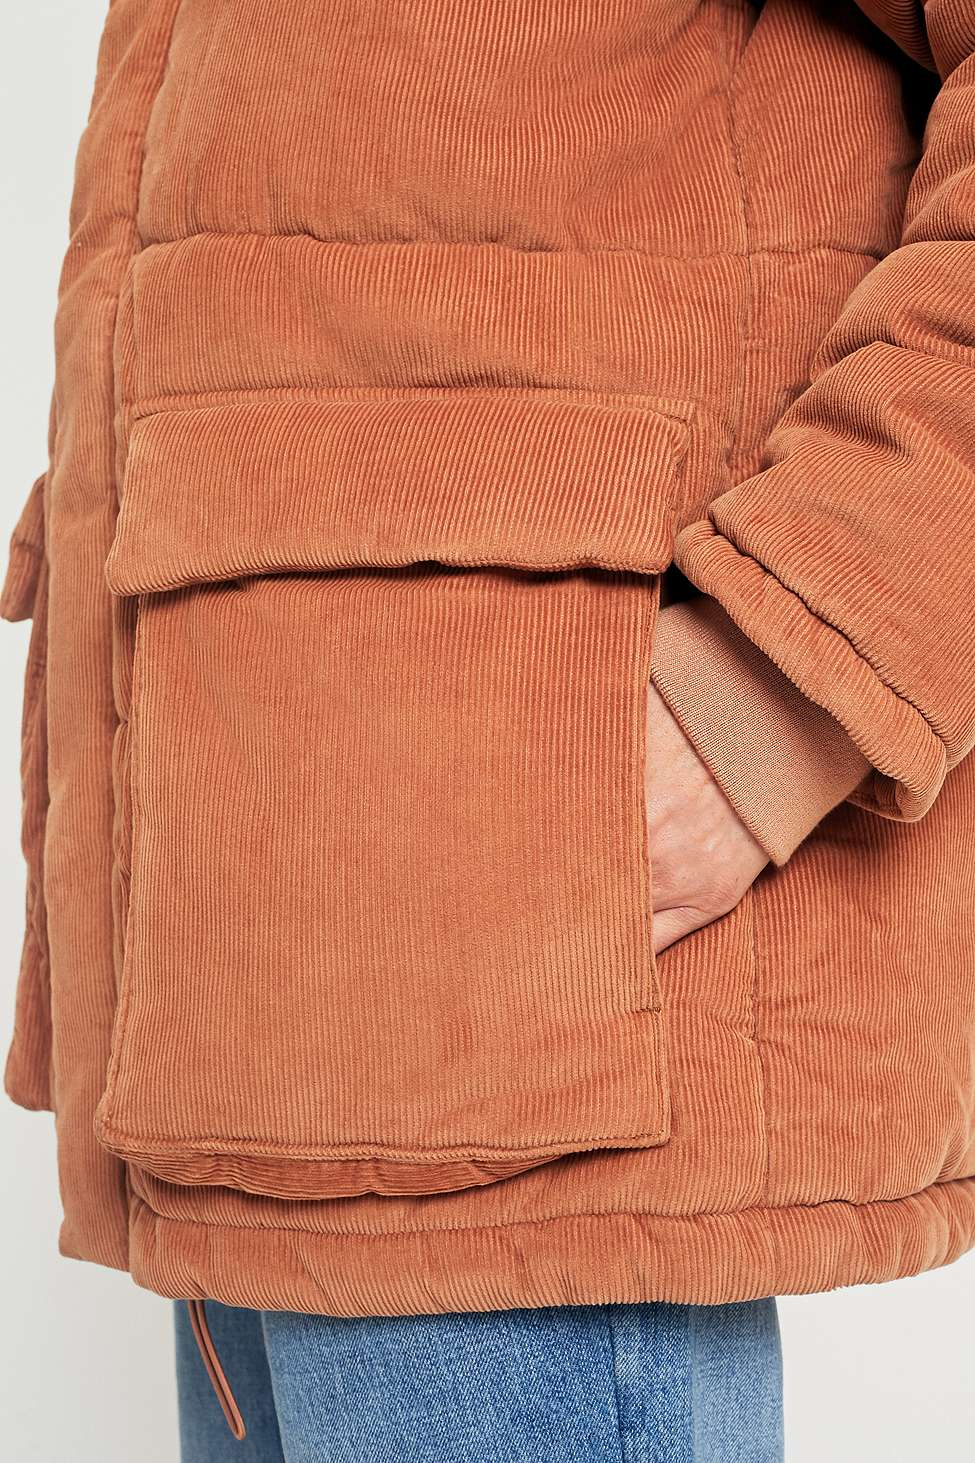 ae721645bb485 UO Kevin Rust Corduroy Puffer Jacket. £120£60. Sorry, this item has just  gone out of stock. Our stylists will find you something similar if you sign  up for ...